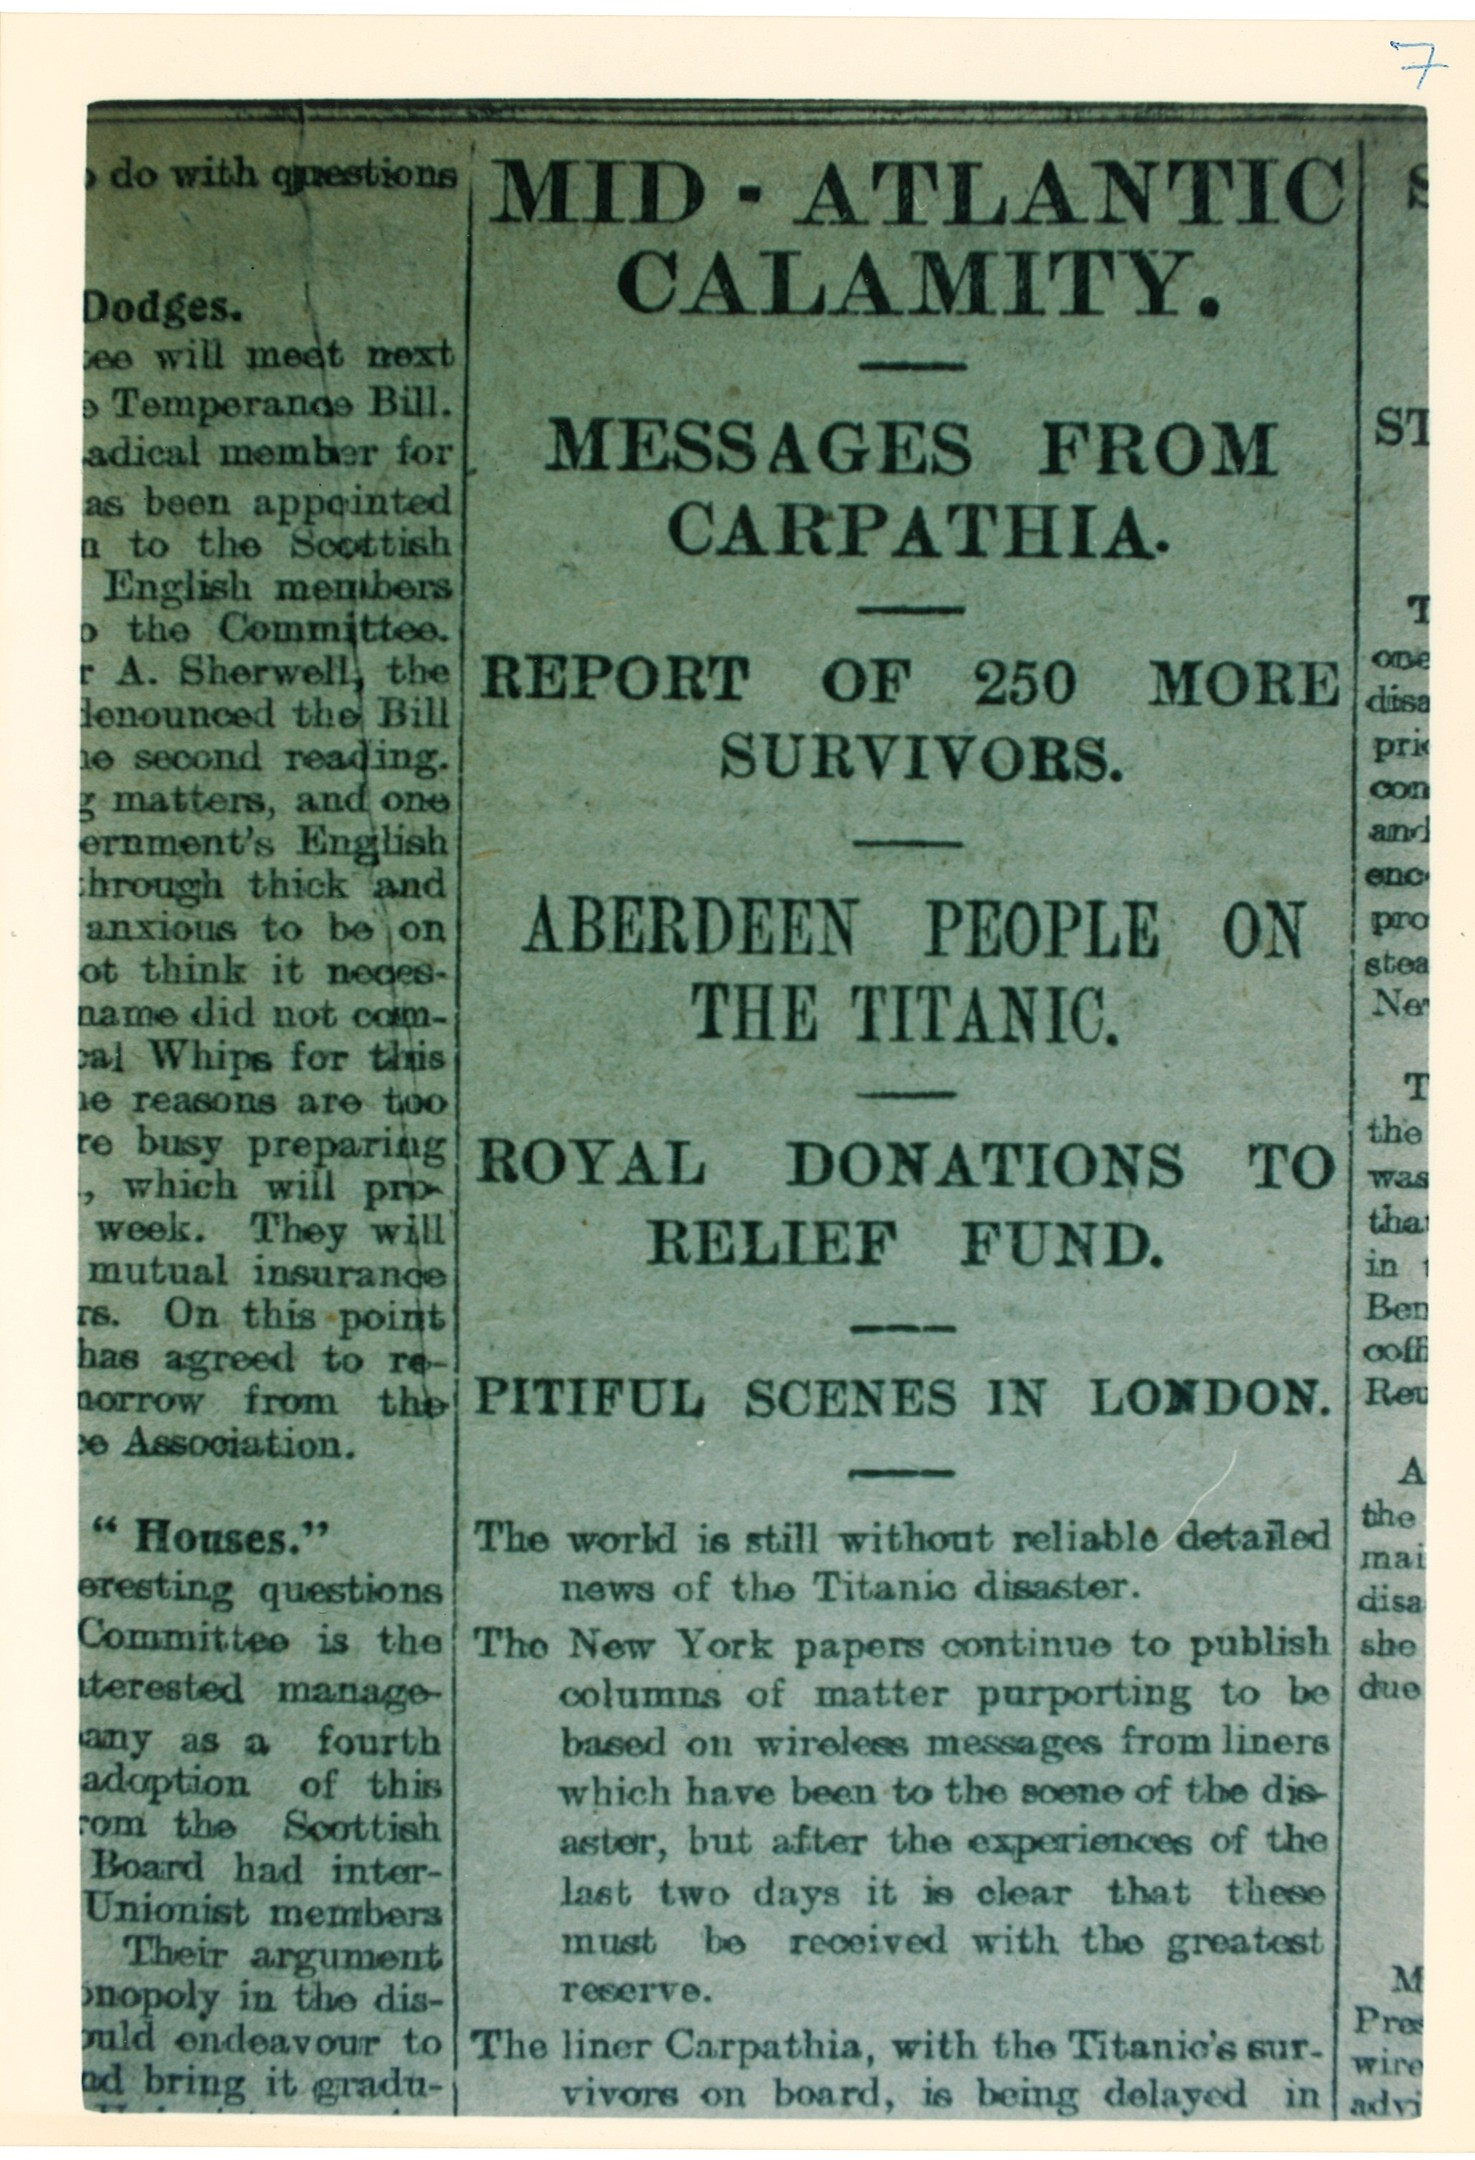 The Press and Journal's front page the day after the Titanic disaster